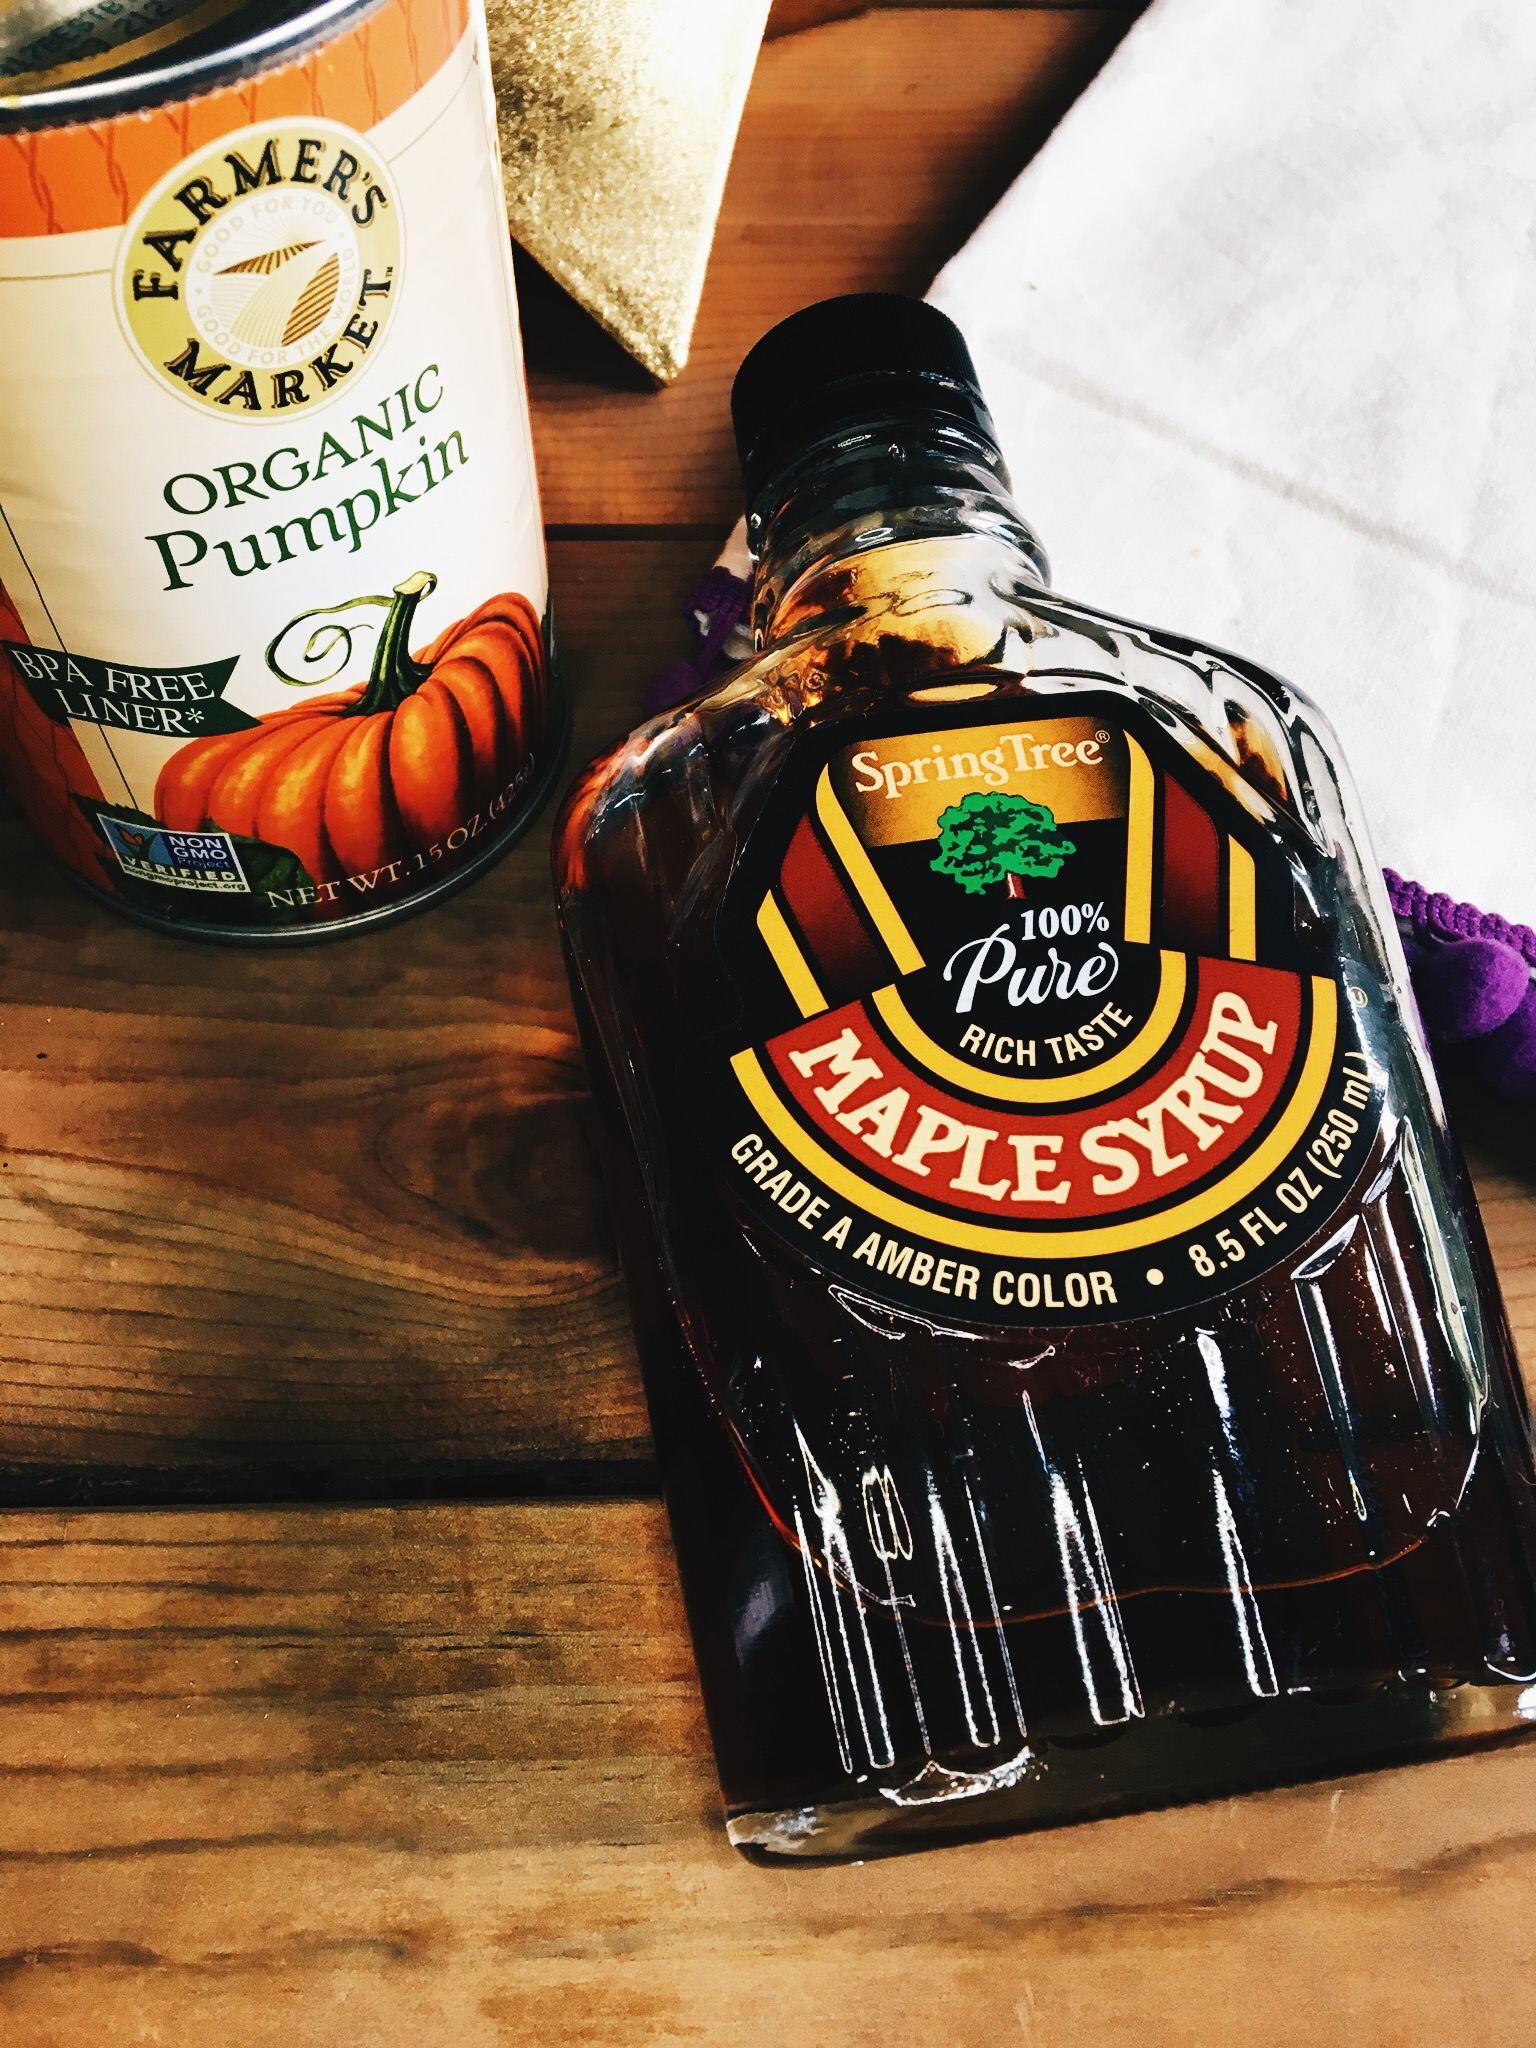 The brand of pumpkin purée I used is called Farmer's Market Organic Pumpkin. The maple syrup I used is by SpringTree, 100% Grade A Pure Maple Syrup. You can use any brand that you may have on hand.